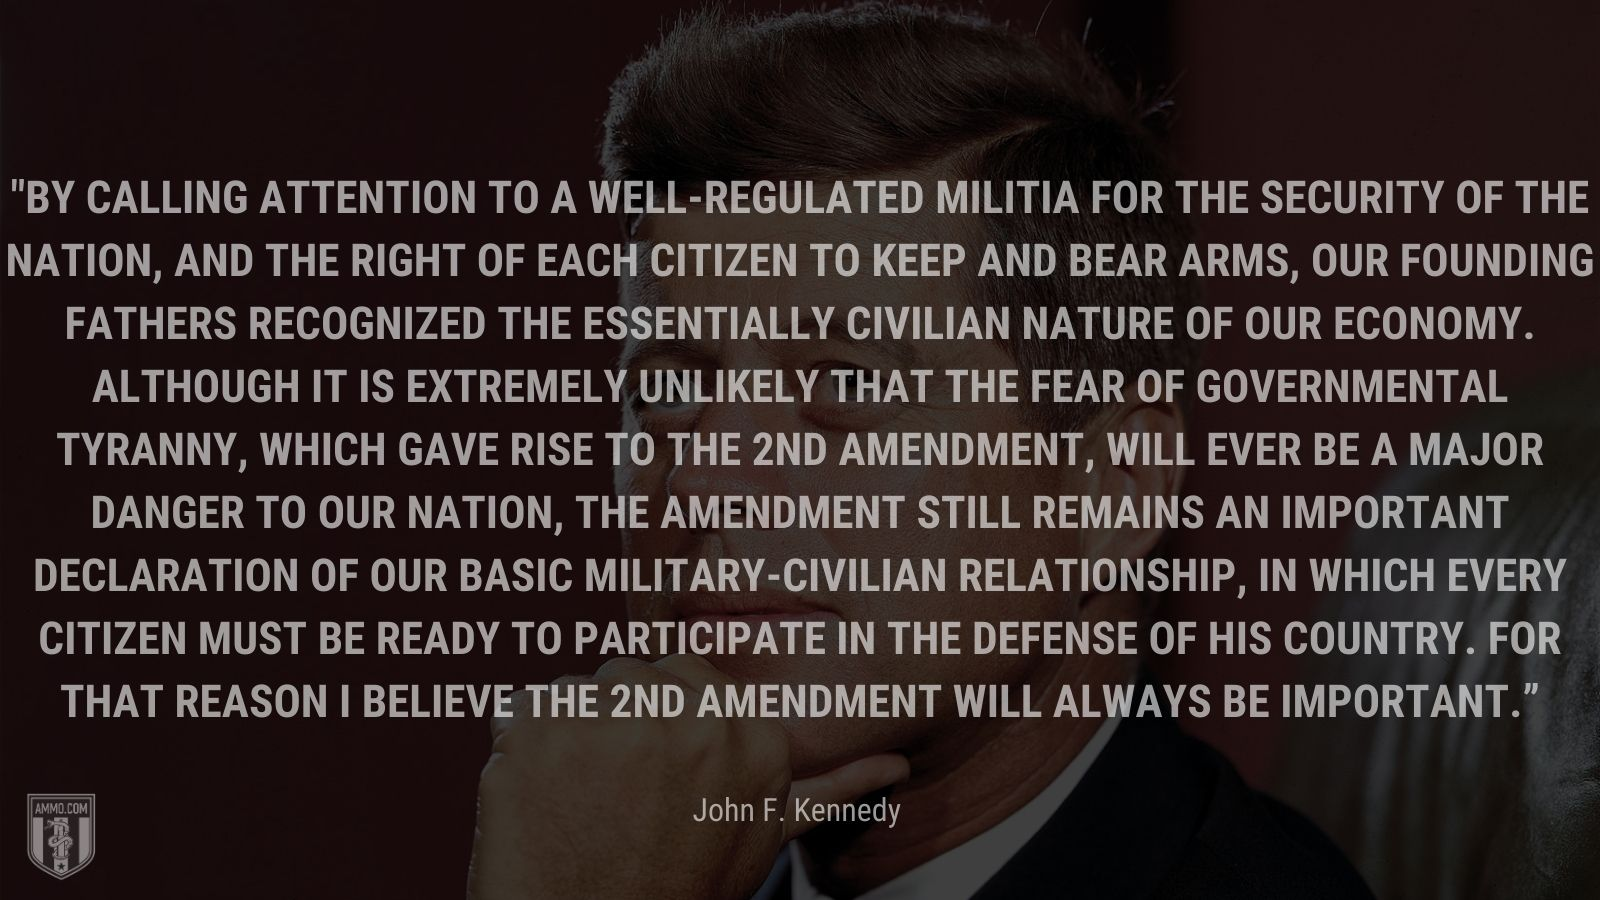 """""""By calling attention to a well-regulated militia for the security of the Nation, and the right of each citizen to keep and bear arms, our founding fathers recognized the essentially civilian nature of our economy. Although it is extremely unlikely that the fear of governmental tyranny, which gave rise to the 2nd amendment, will ever be a major danger to our Nation, the amendment still remains an important declaration of our basic military-civilian relationship, in which every citizen must be ready to participate in the defense of his country. For that reason I believe the 2nd Amendment will always be important."""" - John F. Kennedy"""